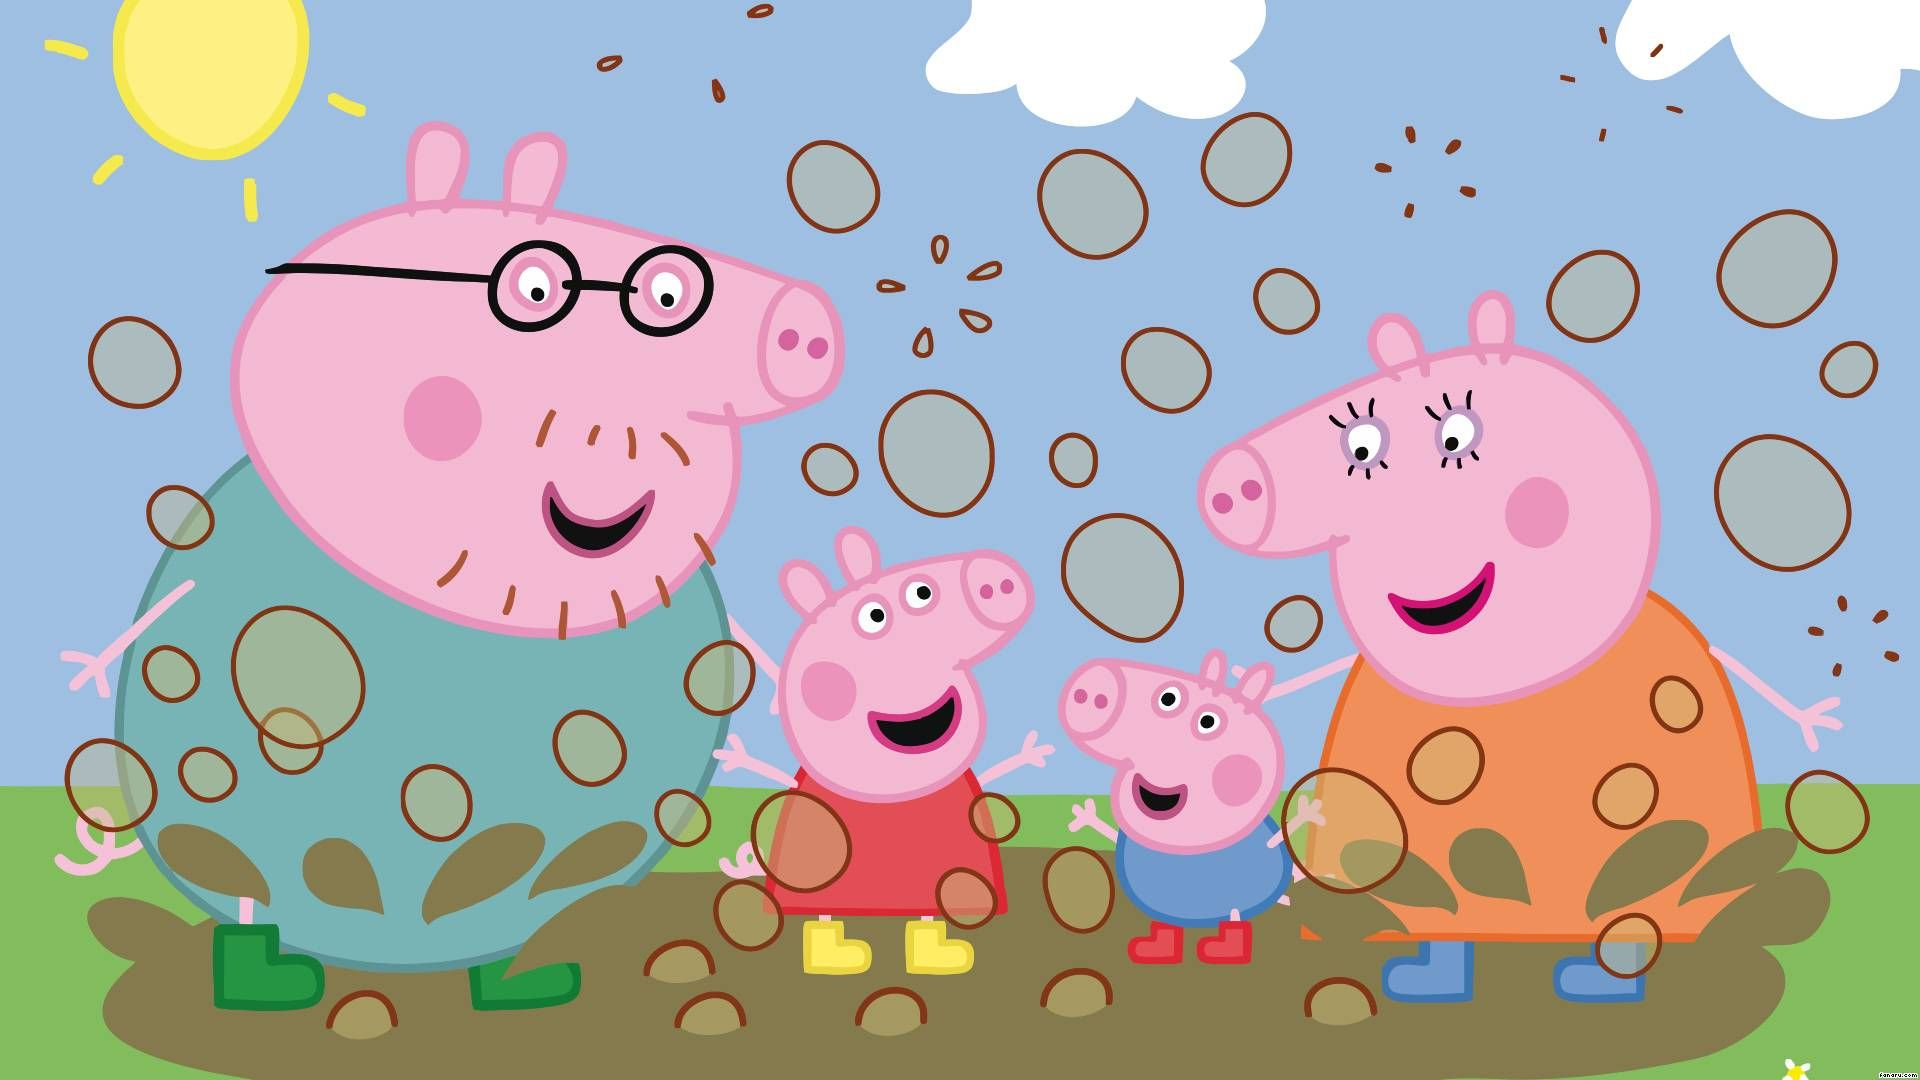 Peppa Pig Hd Wallpaper 1559 1329 Pig Images Wallpapers 37